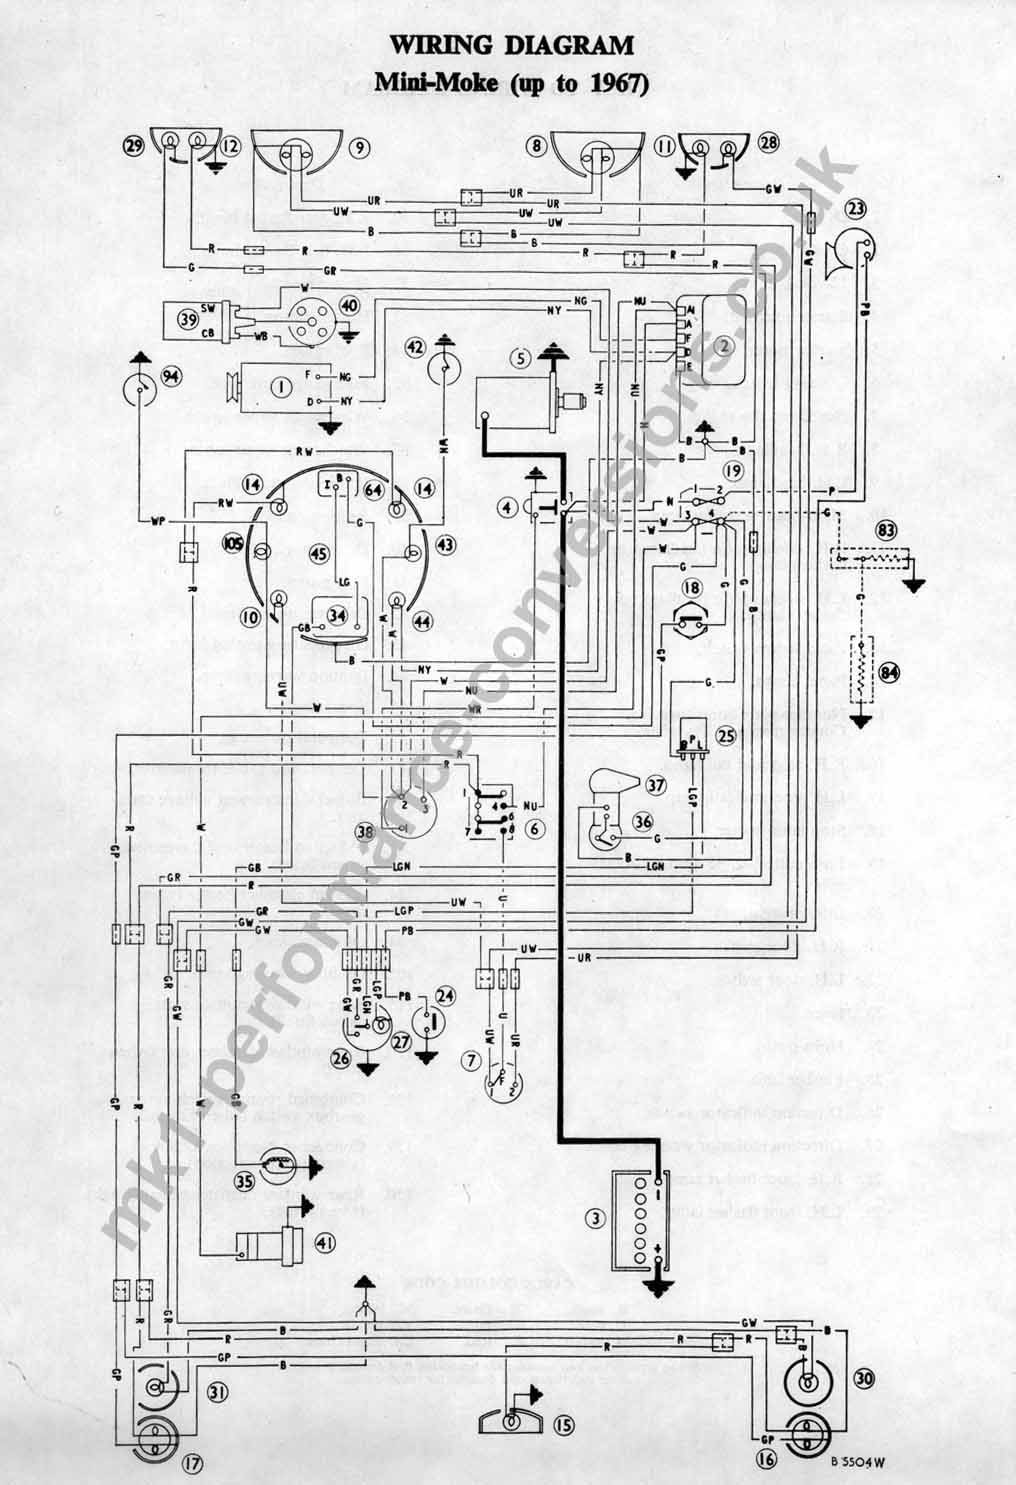 mk1_moke_wiring classic mini bmw isetta 300 wiring diagram at fashall.co